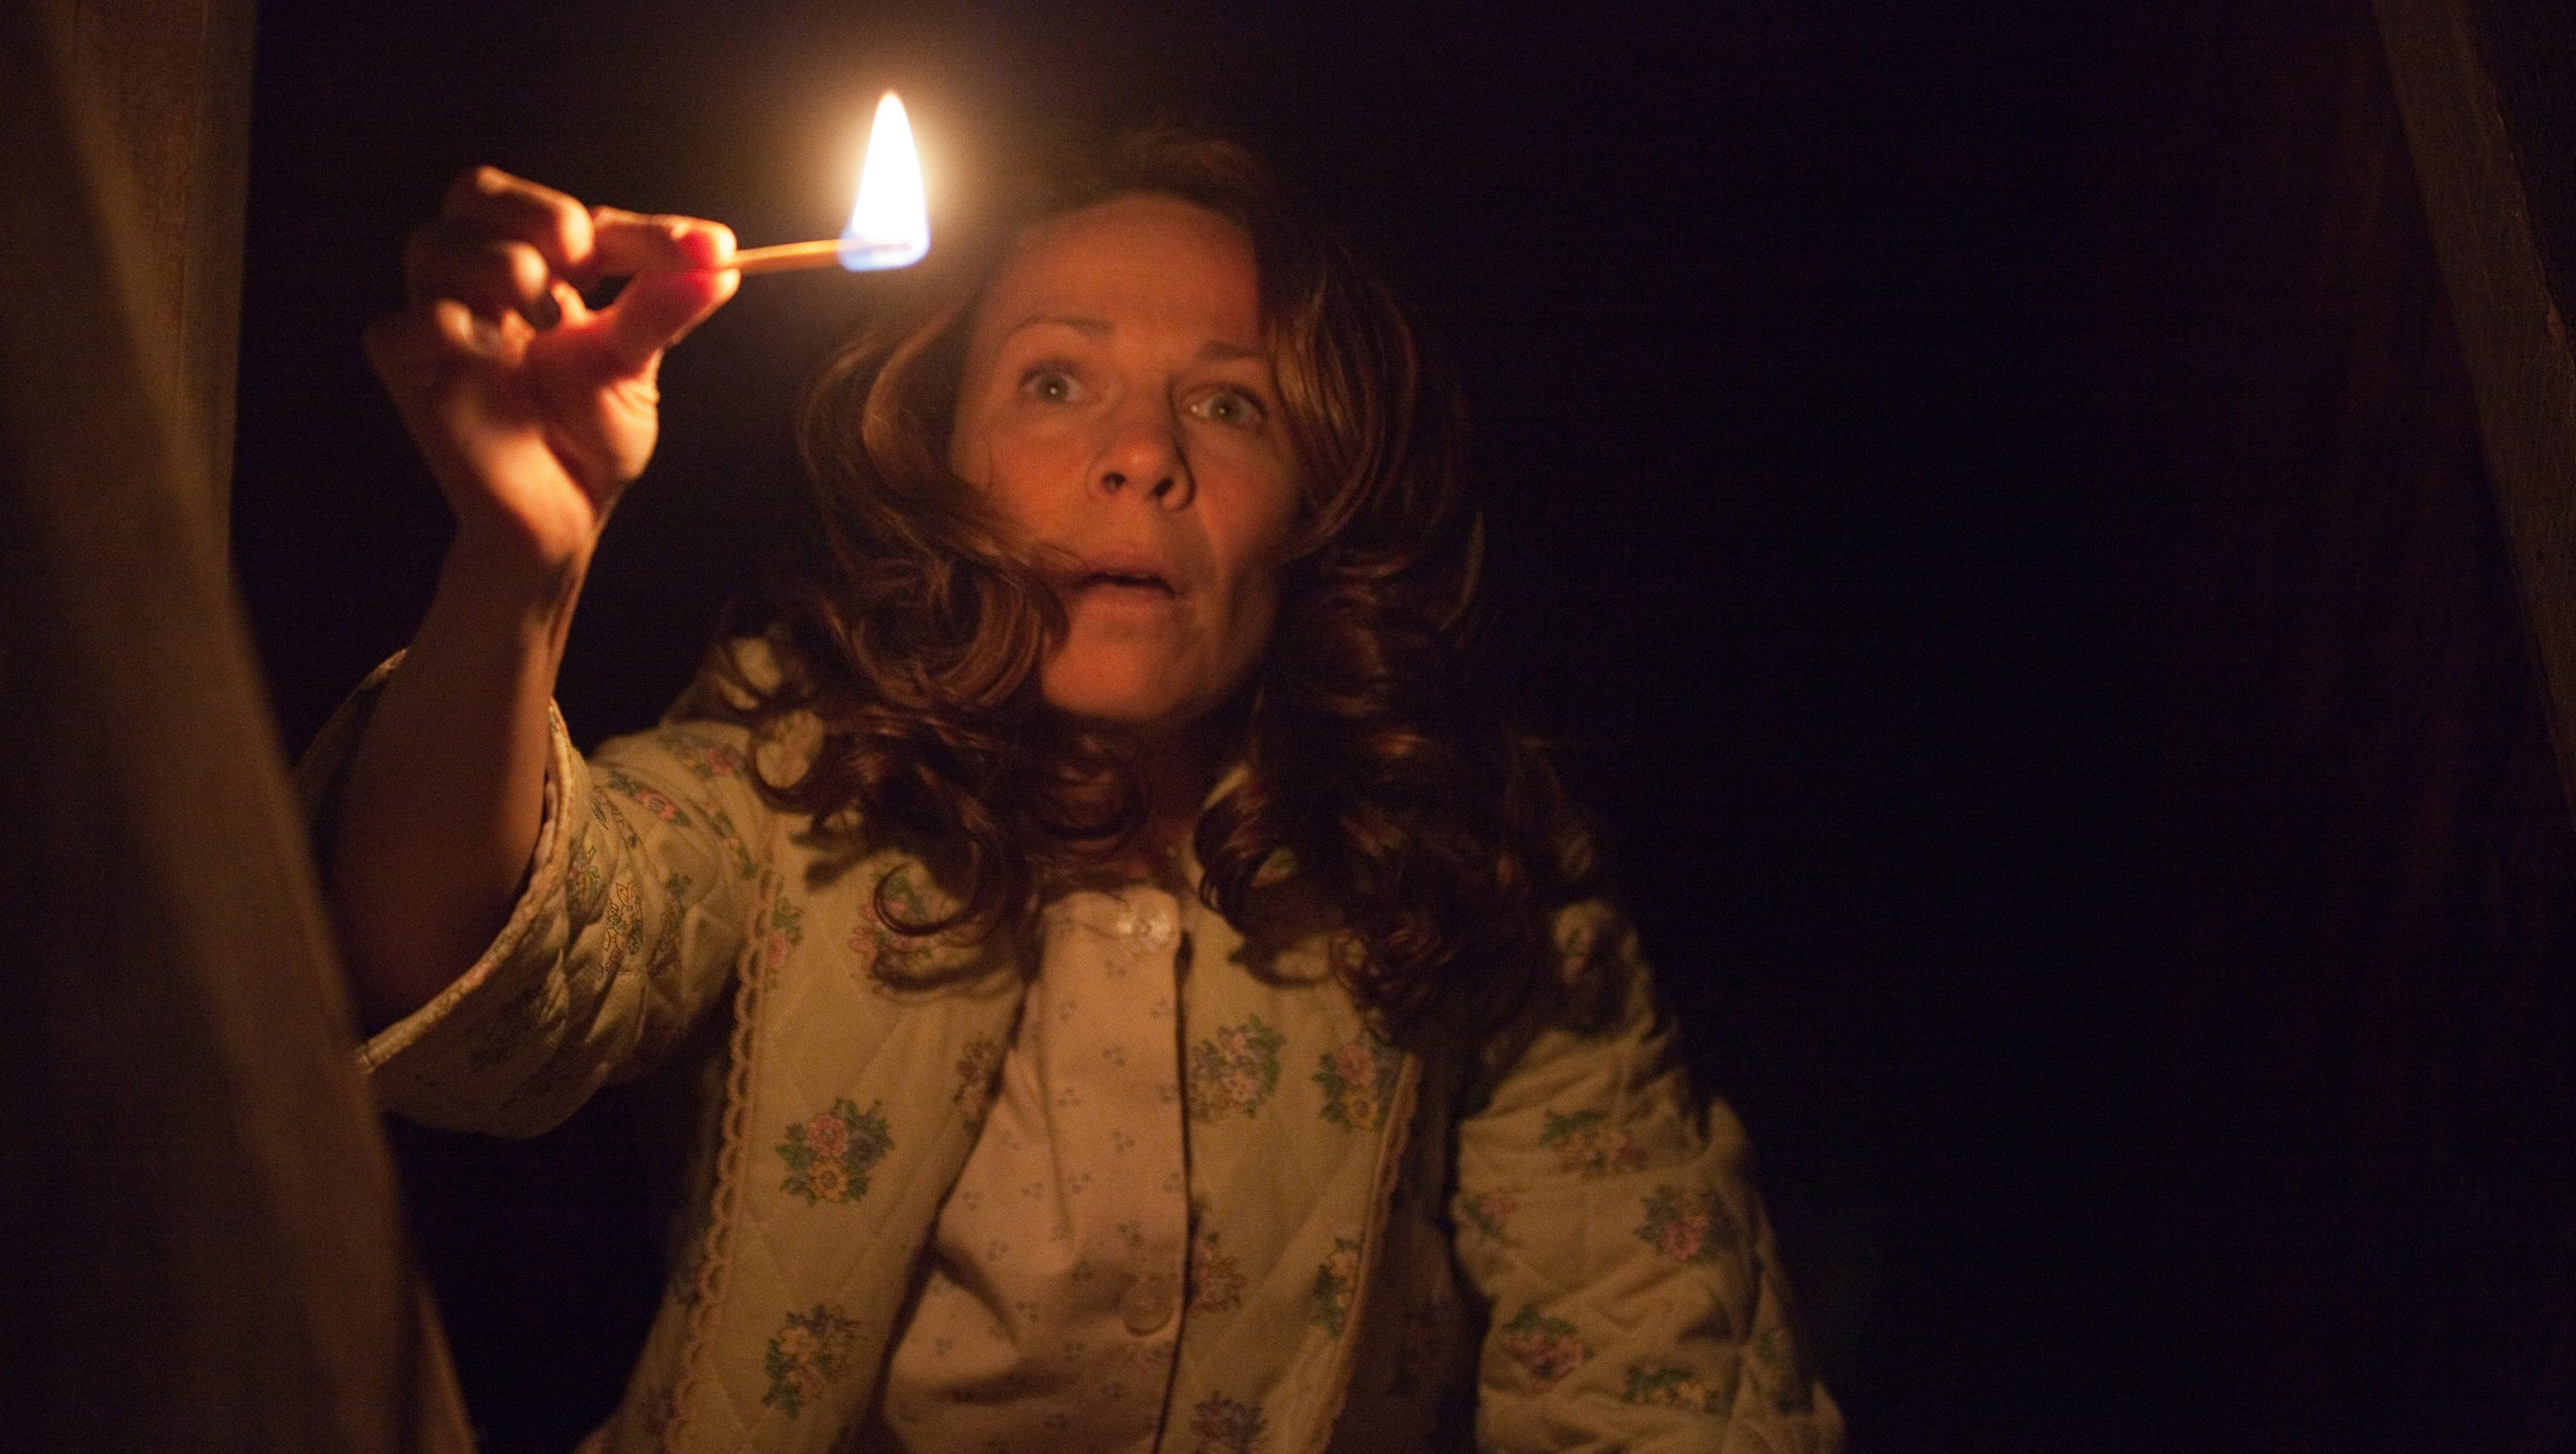 The 'true' story behind 'The Conjuring'